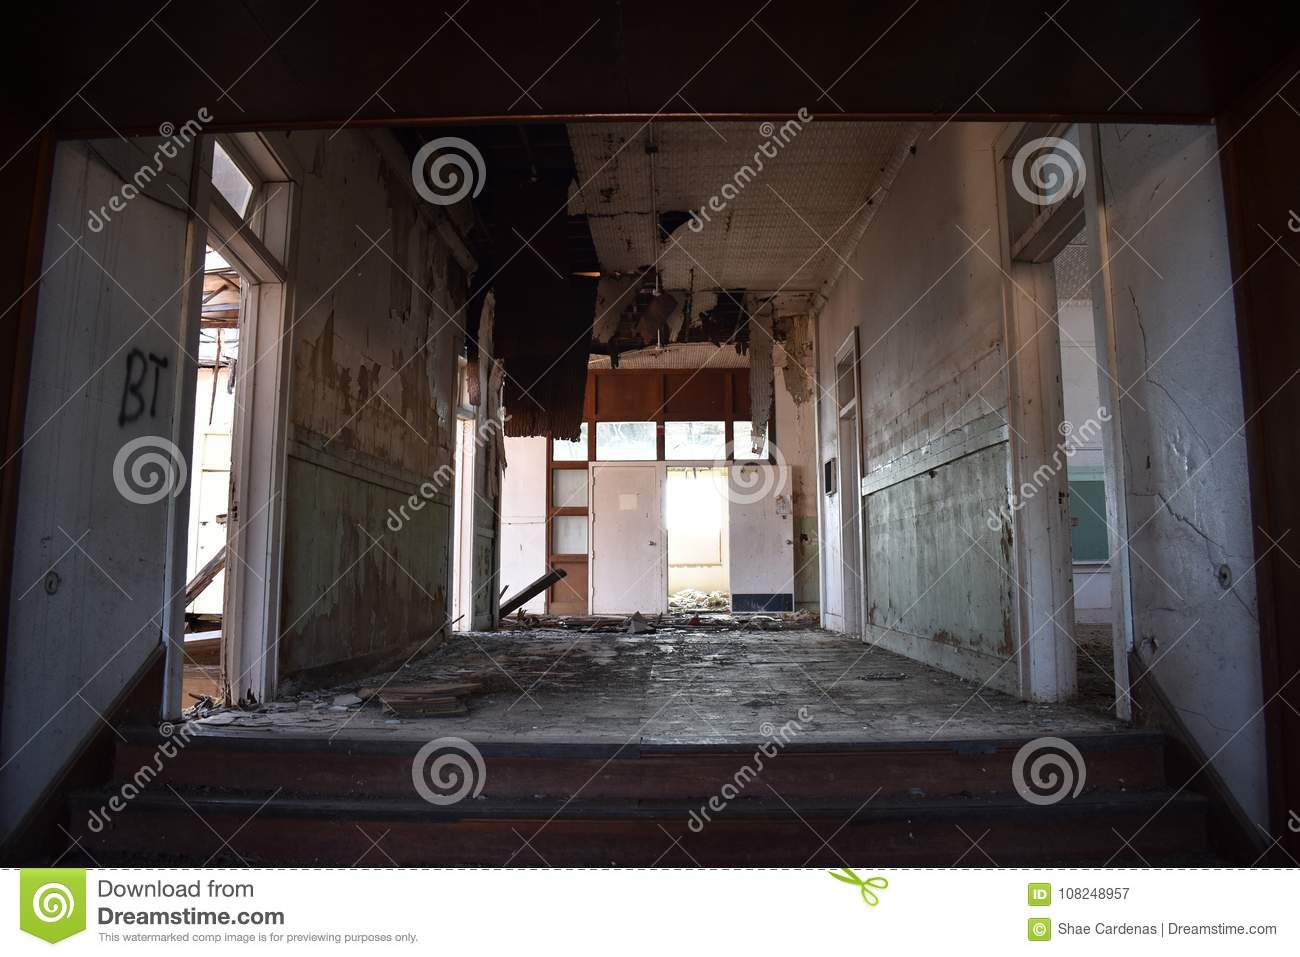 Interior of an old abandoned school